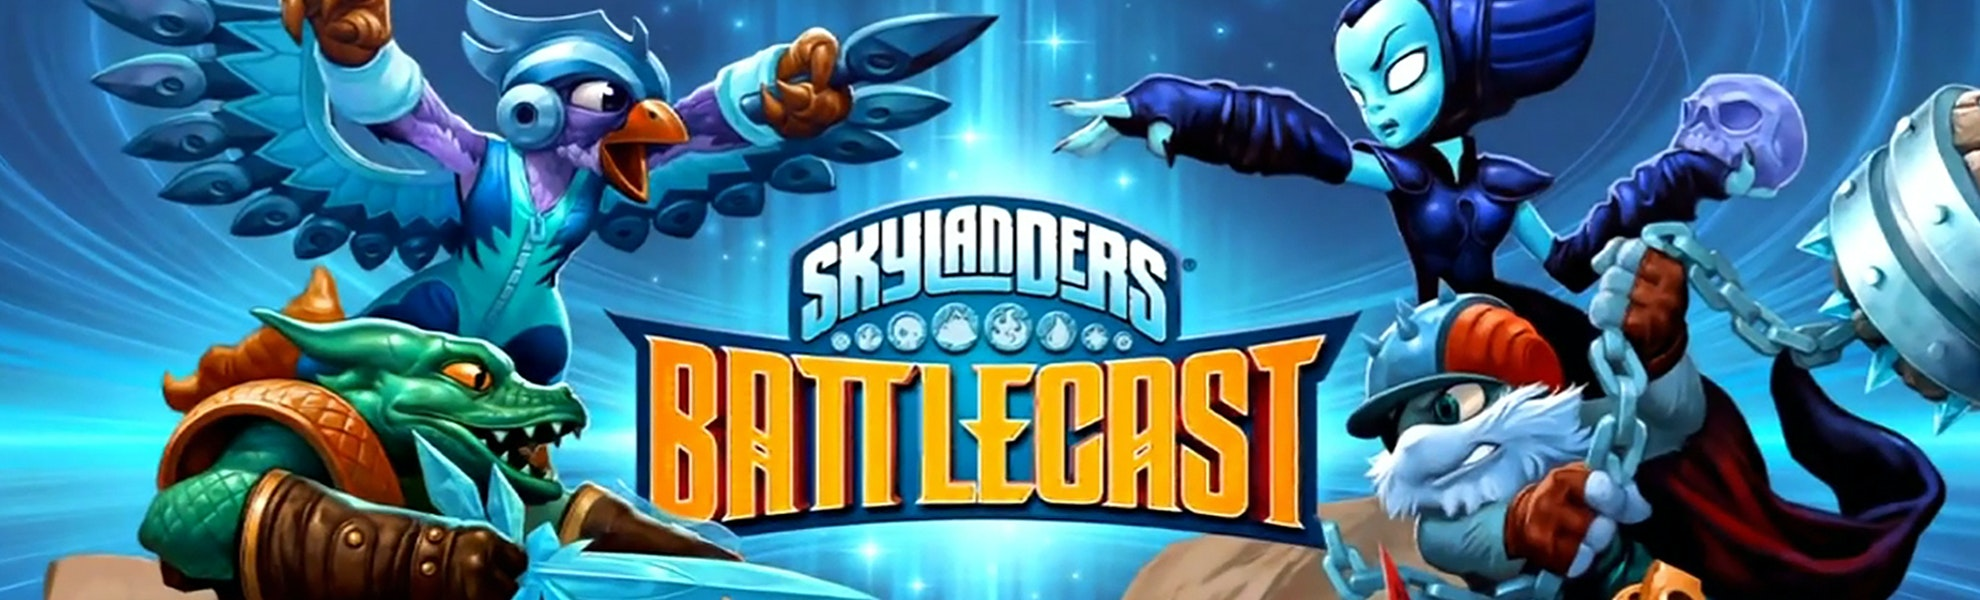 Skylanders Battlecast Bundle